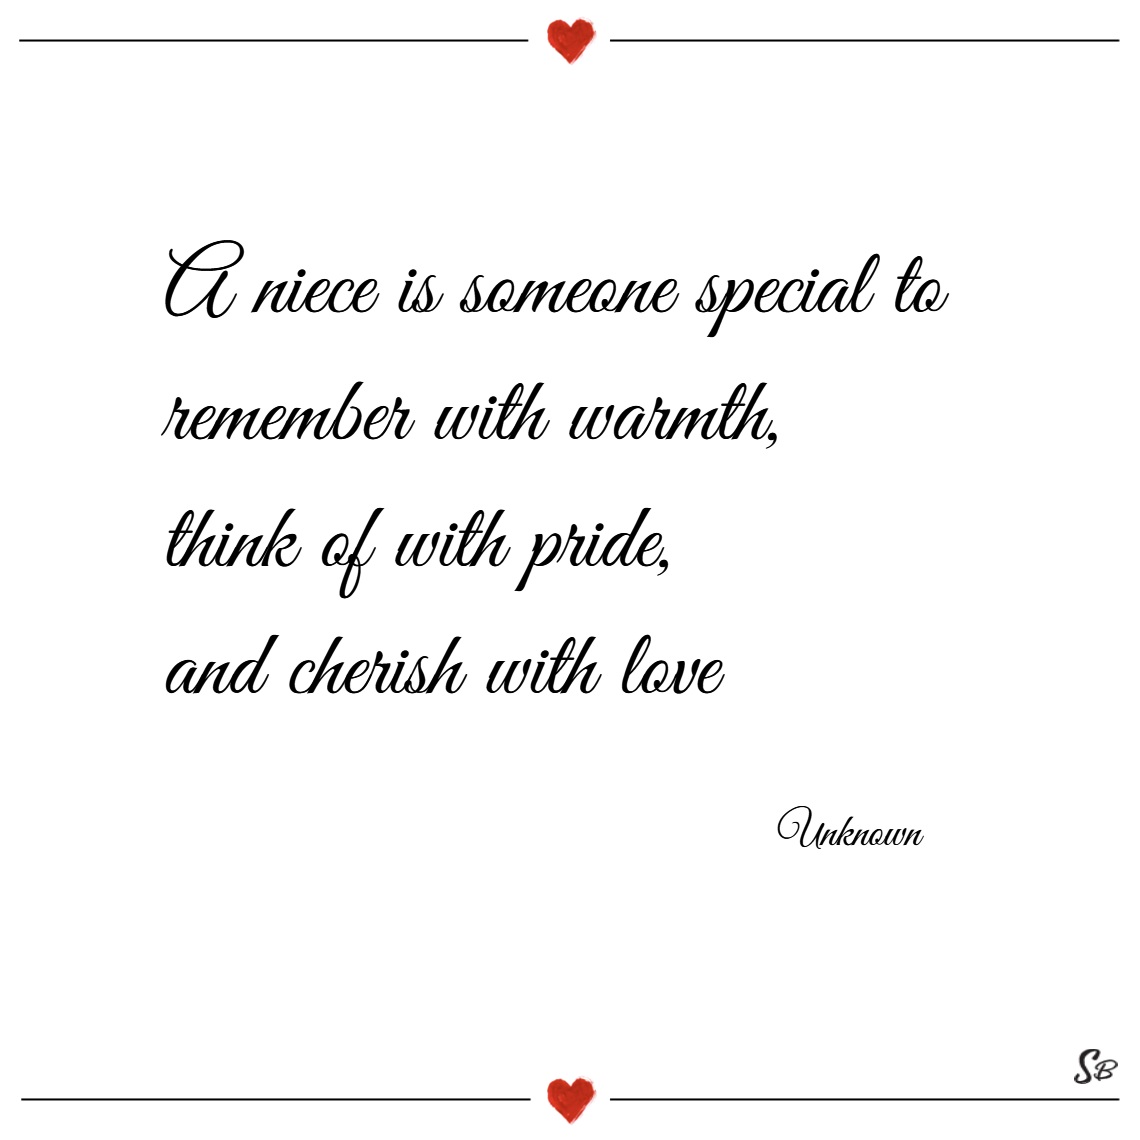 A niece is someone special to remember with warmth, think of with pride, and cherish with love. – unknown niece quotes